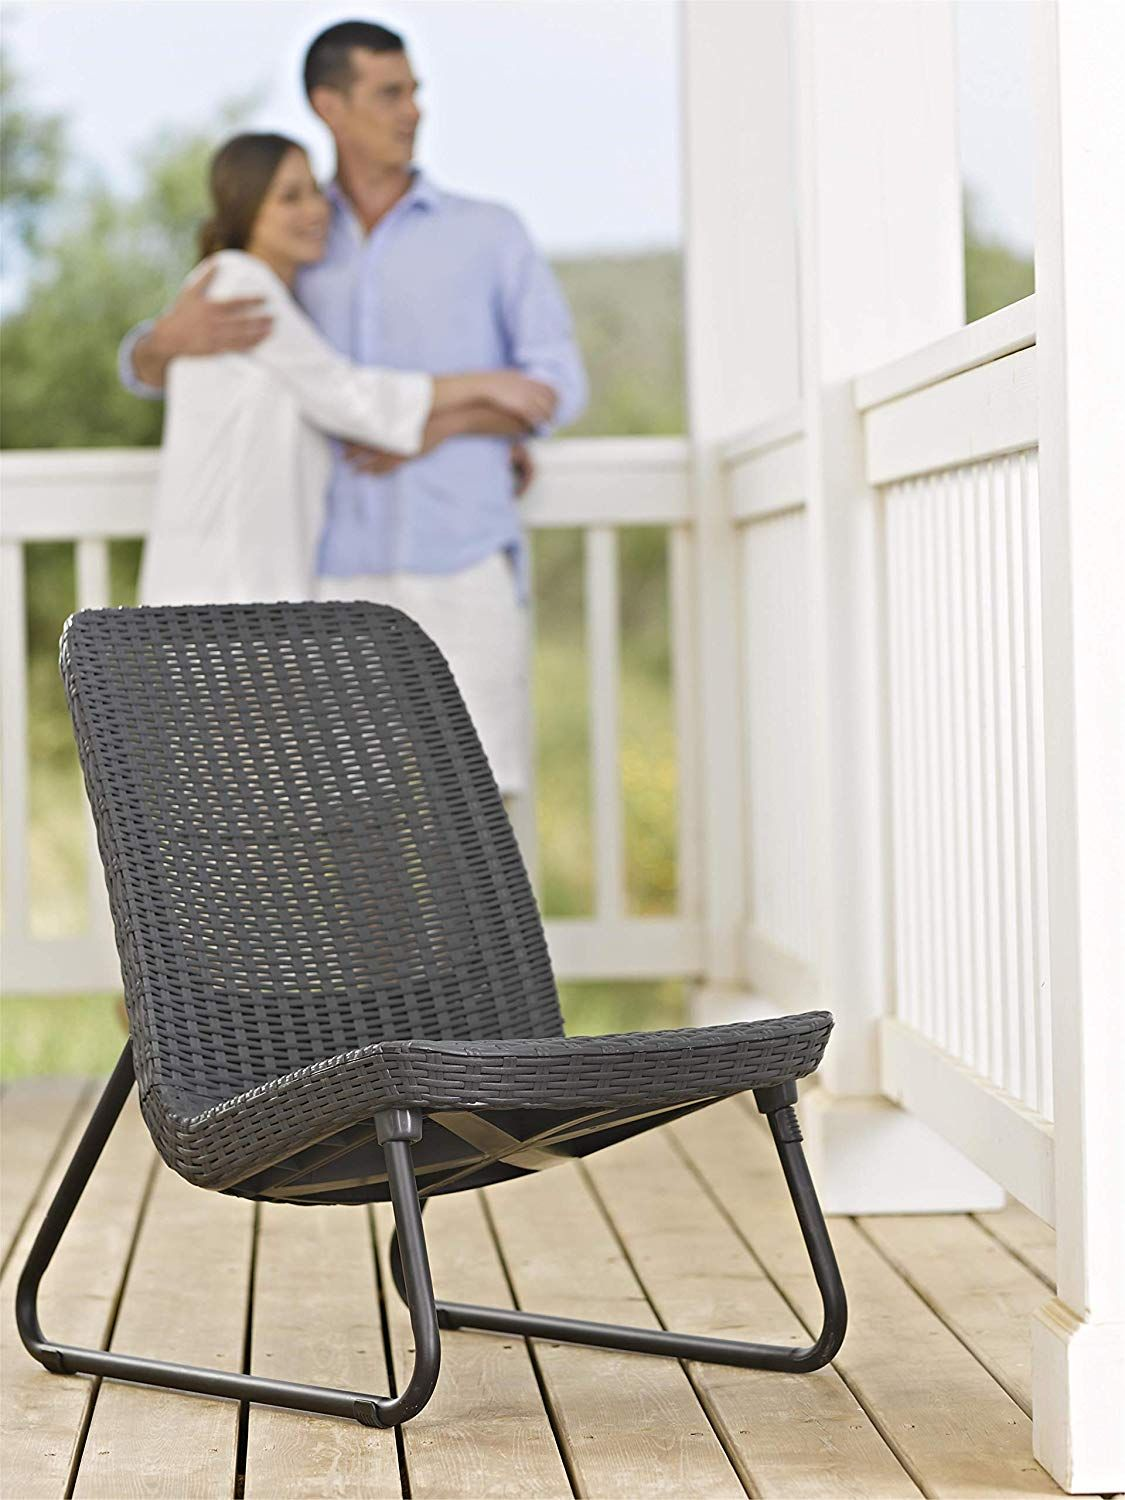 980267e535c3 If you are drawn to furniture with a modern, wicker look and want a set